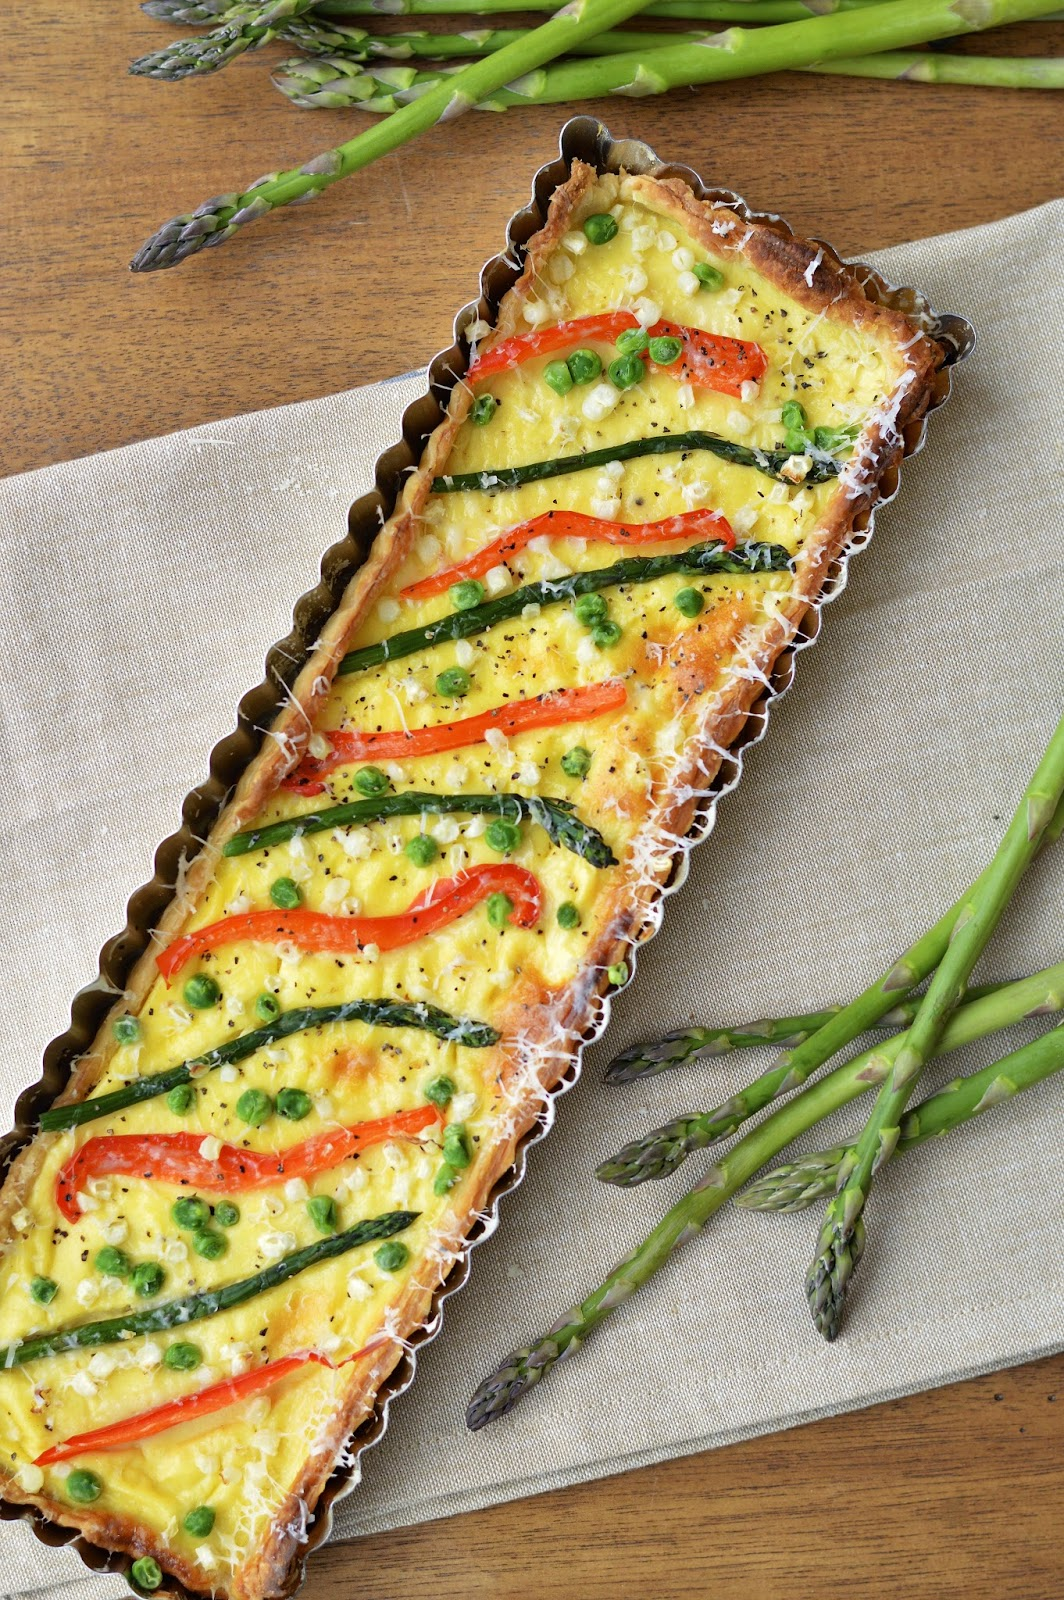 This spring vegetable tart is made with greek yogurt and fresh veggies. It's perfect for dinner with crusty French bread and an arugula salad | Virtually Homemade